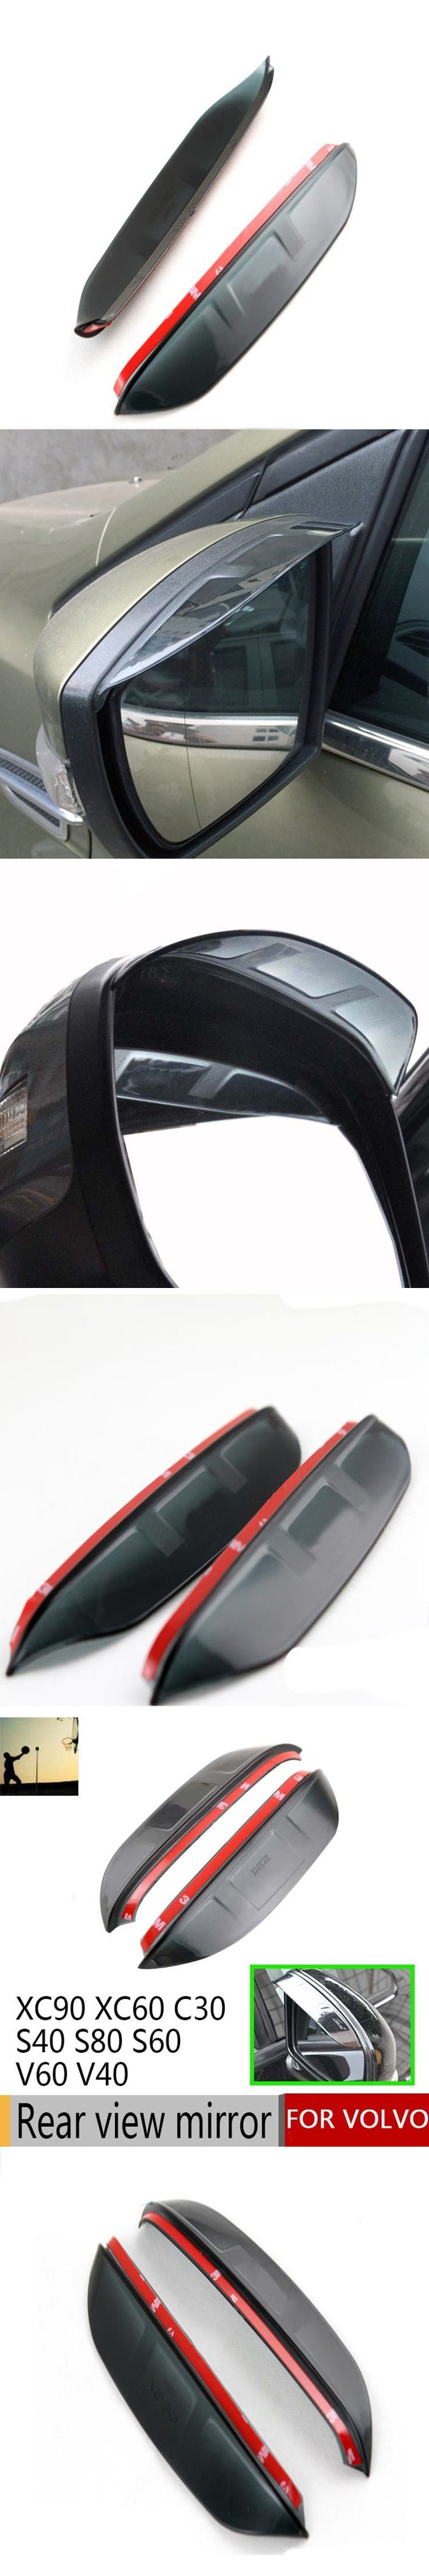 accessories item intl by cars models new volvo designed roof list top box